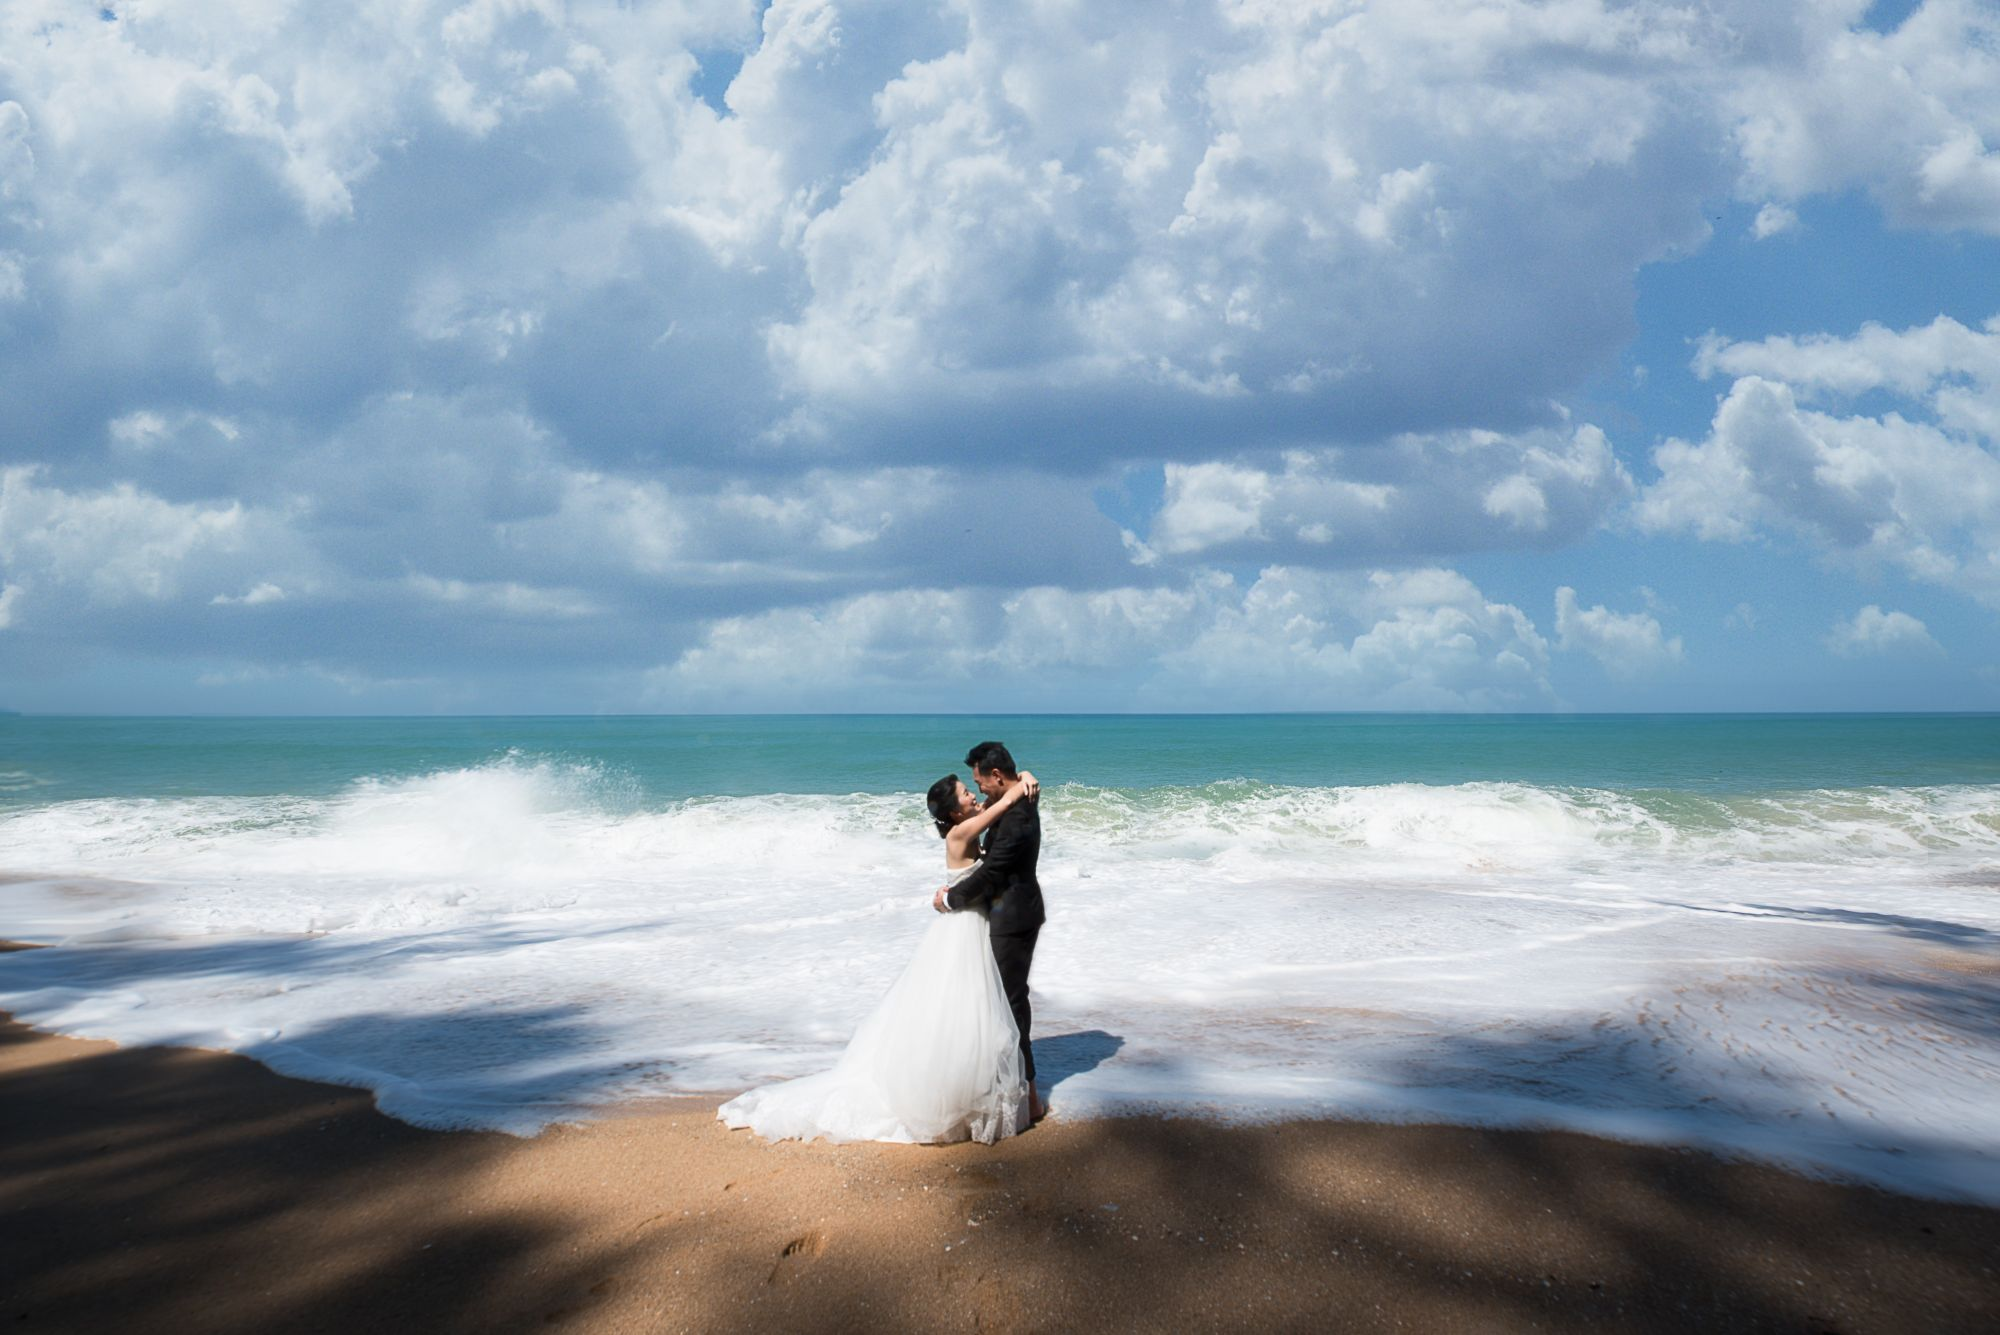 5 Useful Tips To Prepare For A Destination Wedding Shoot